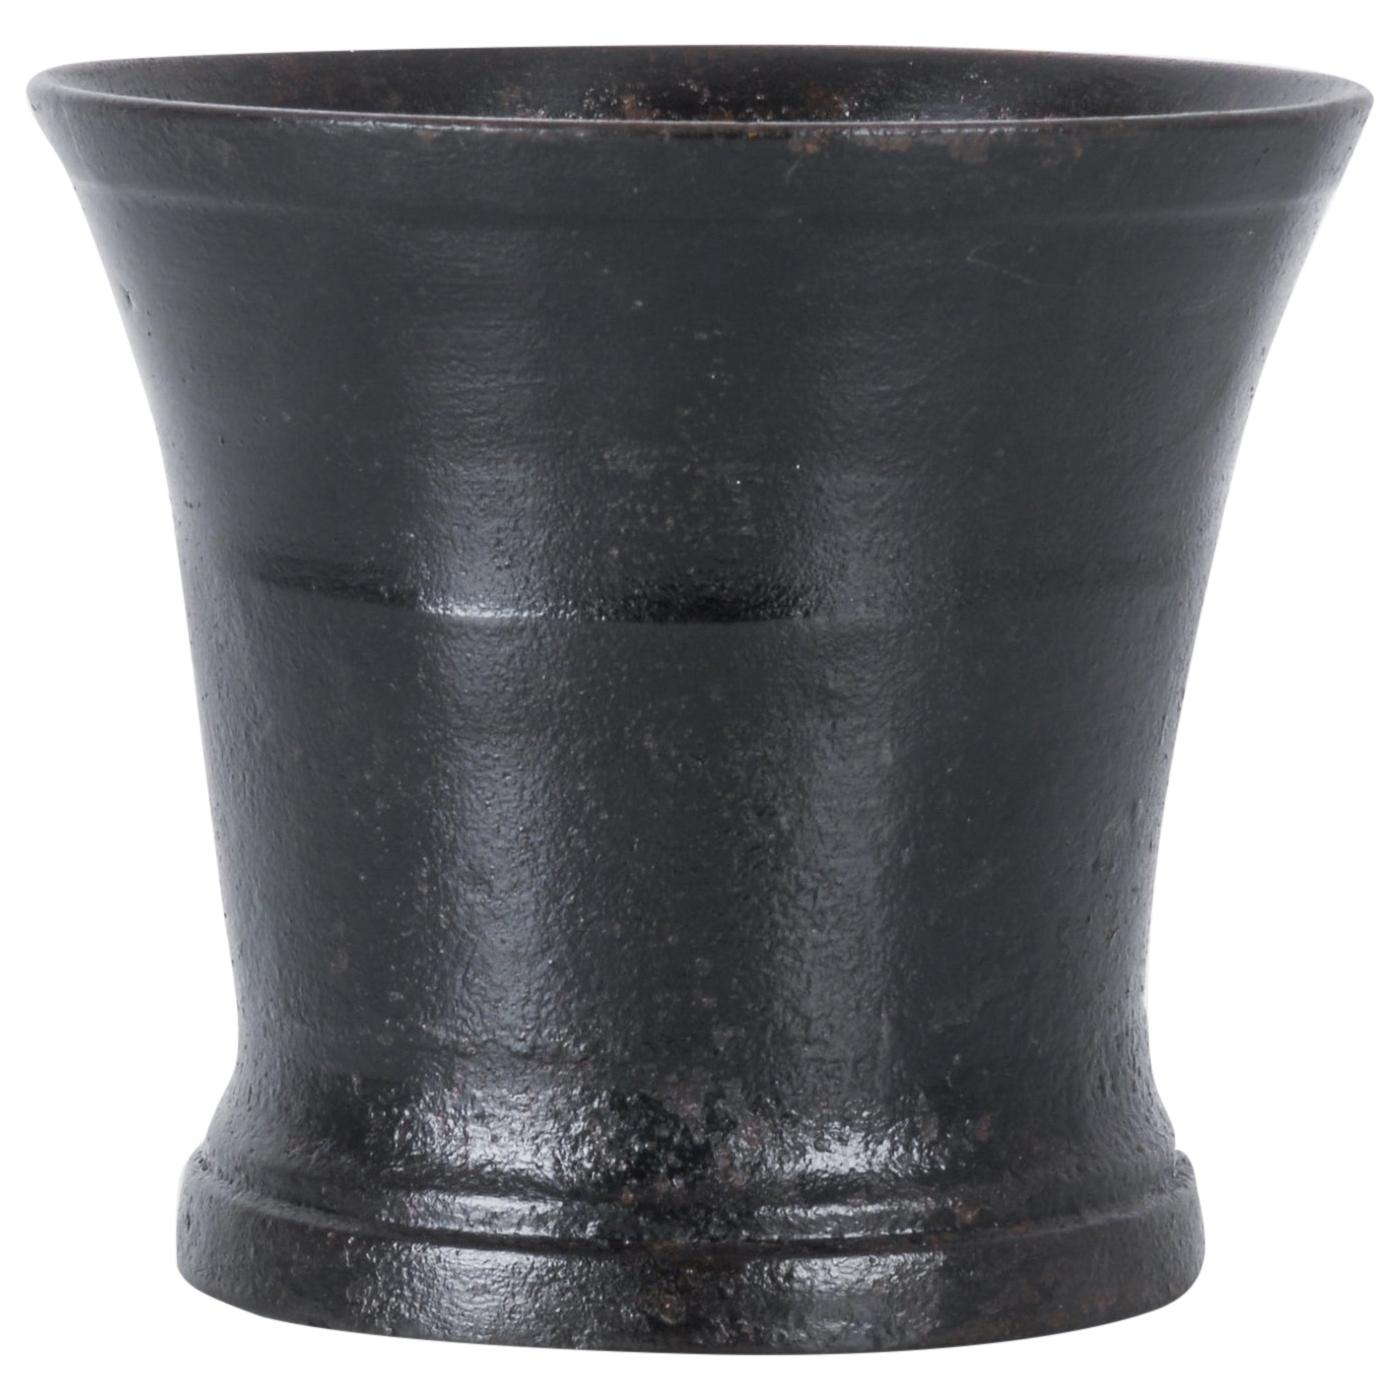 1800s French Cast Iron Mortar